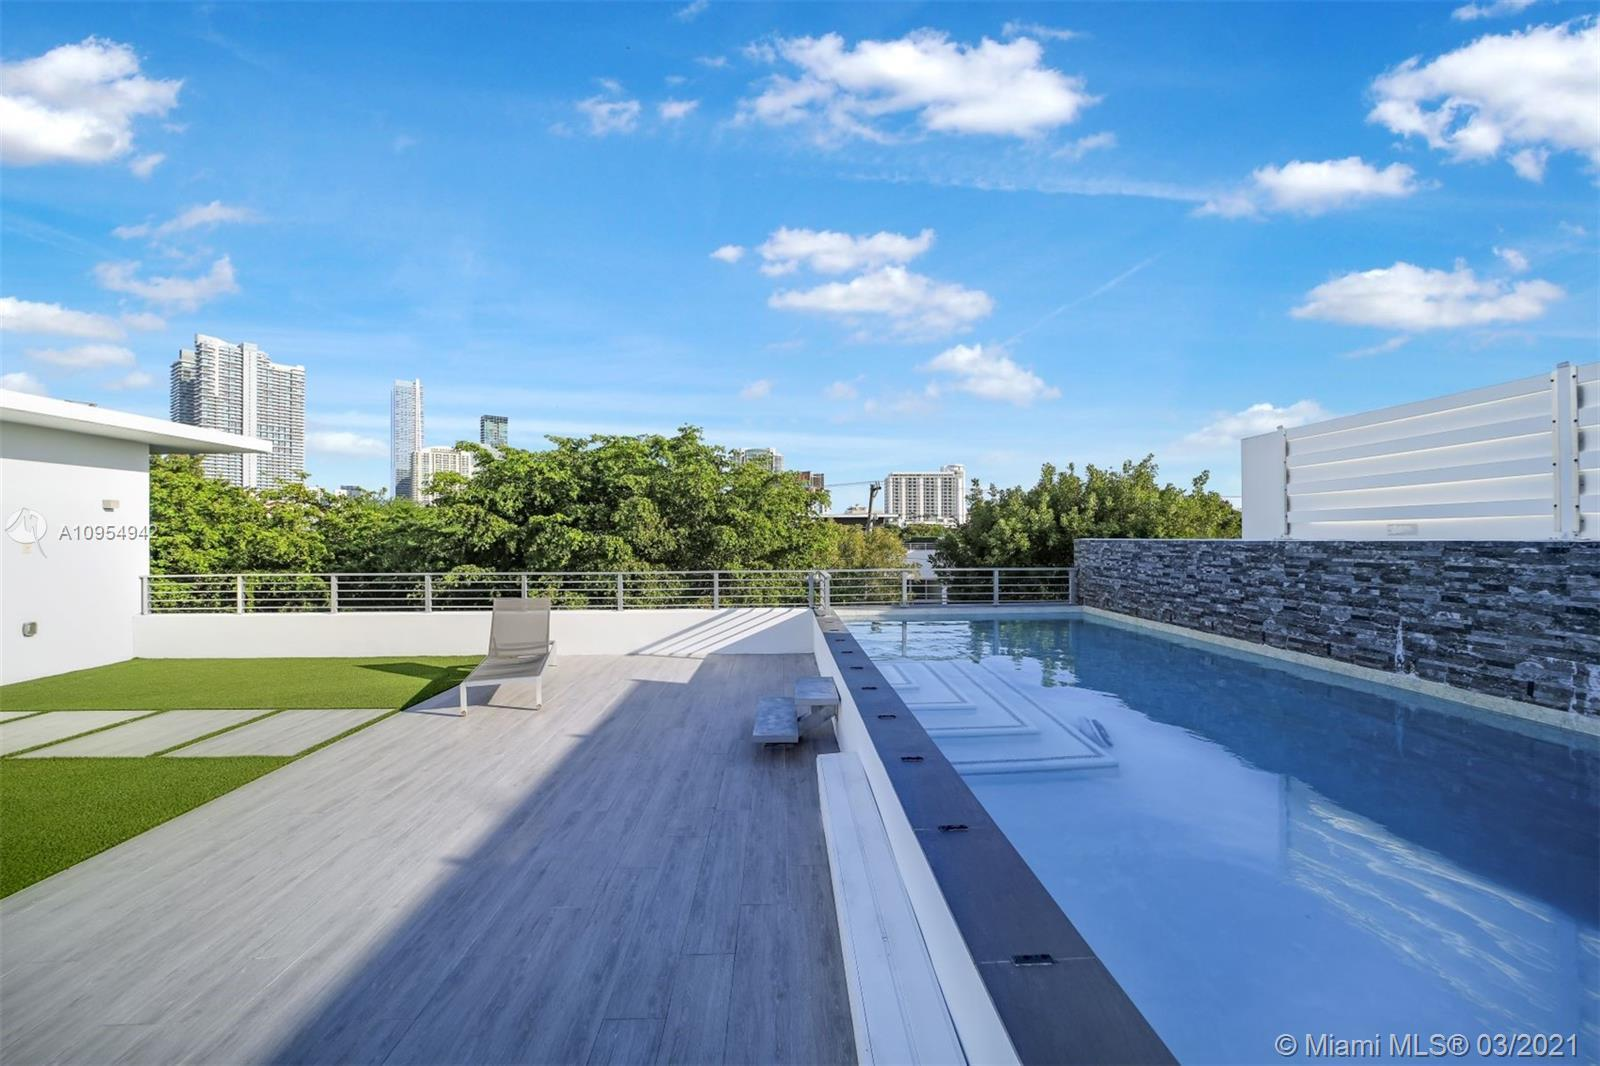 Total square footage: 3,827 square feet including second floor balcony and garage. Brickell Broadway